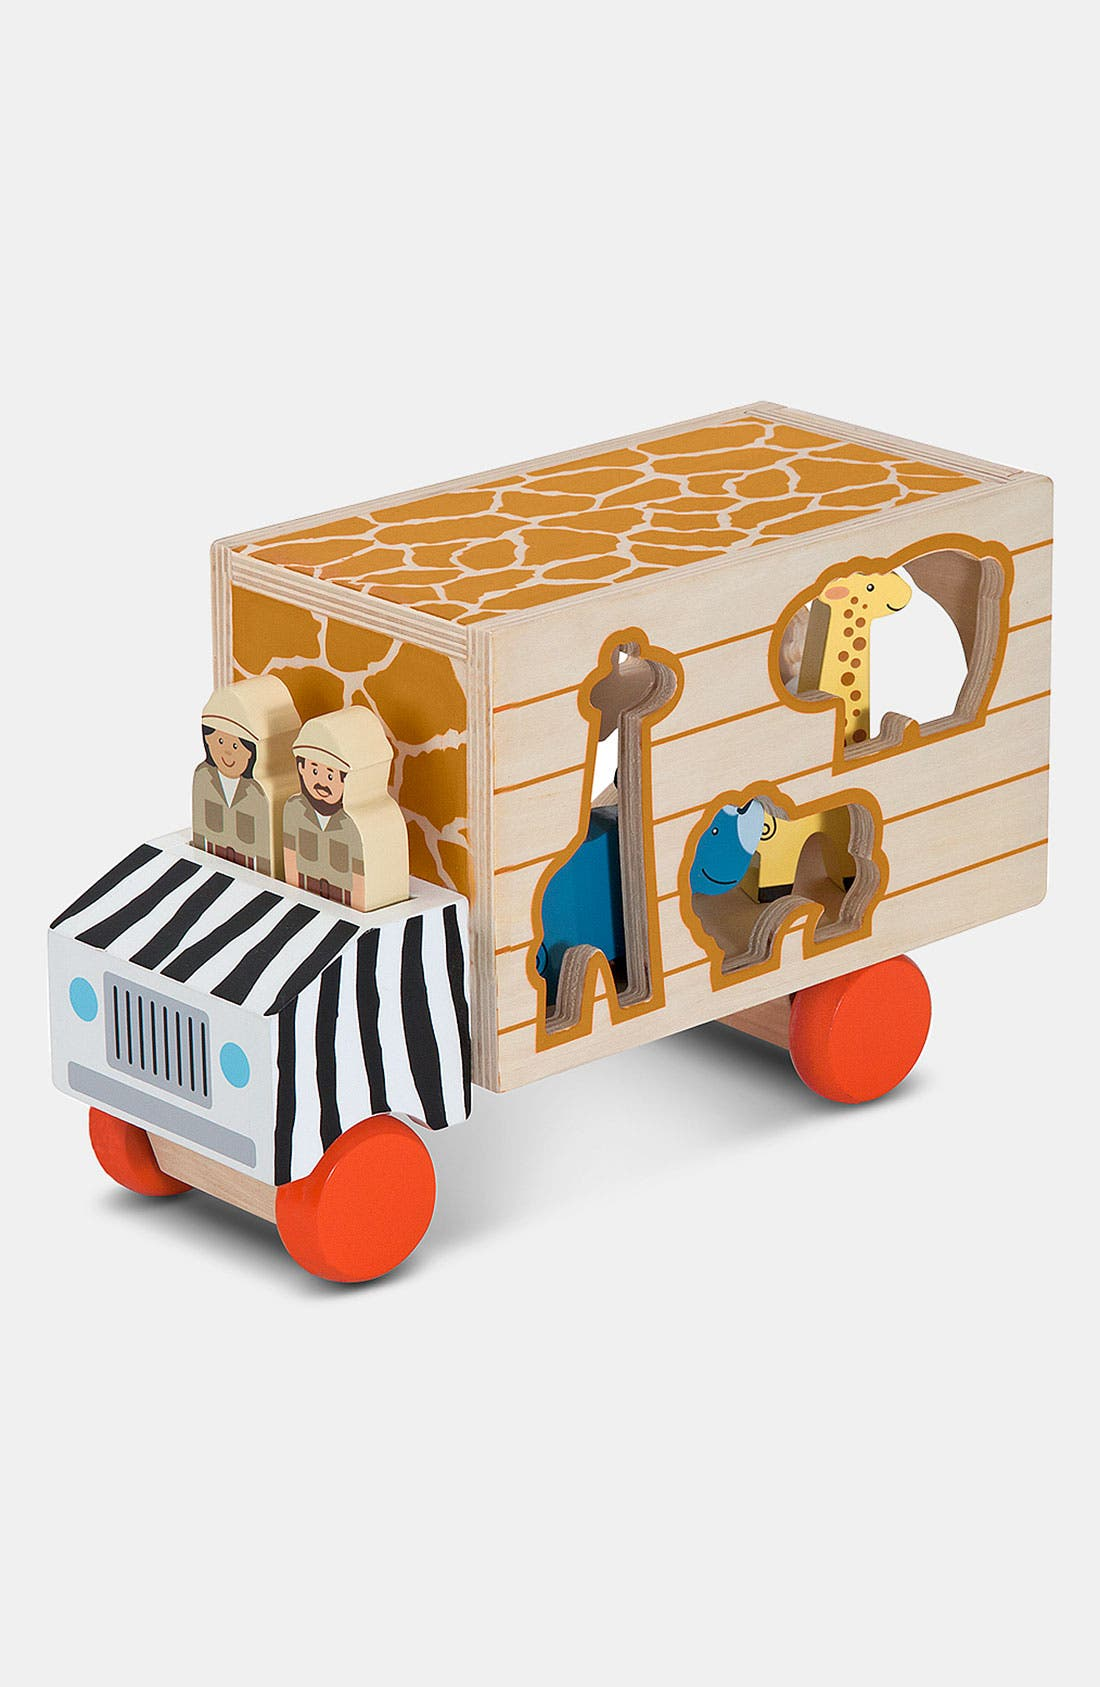 Toddler Melissa  Doug Animal Rescue Shape Sorting Wooden Truck Toy